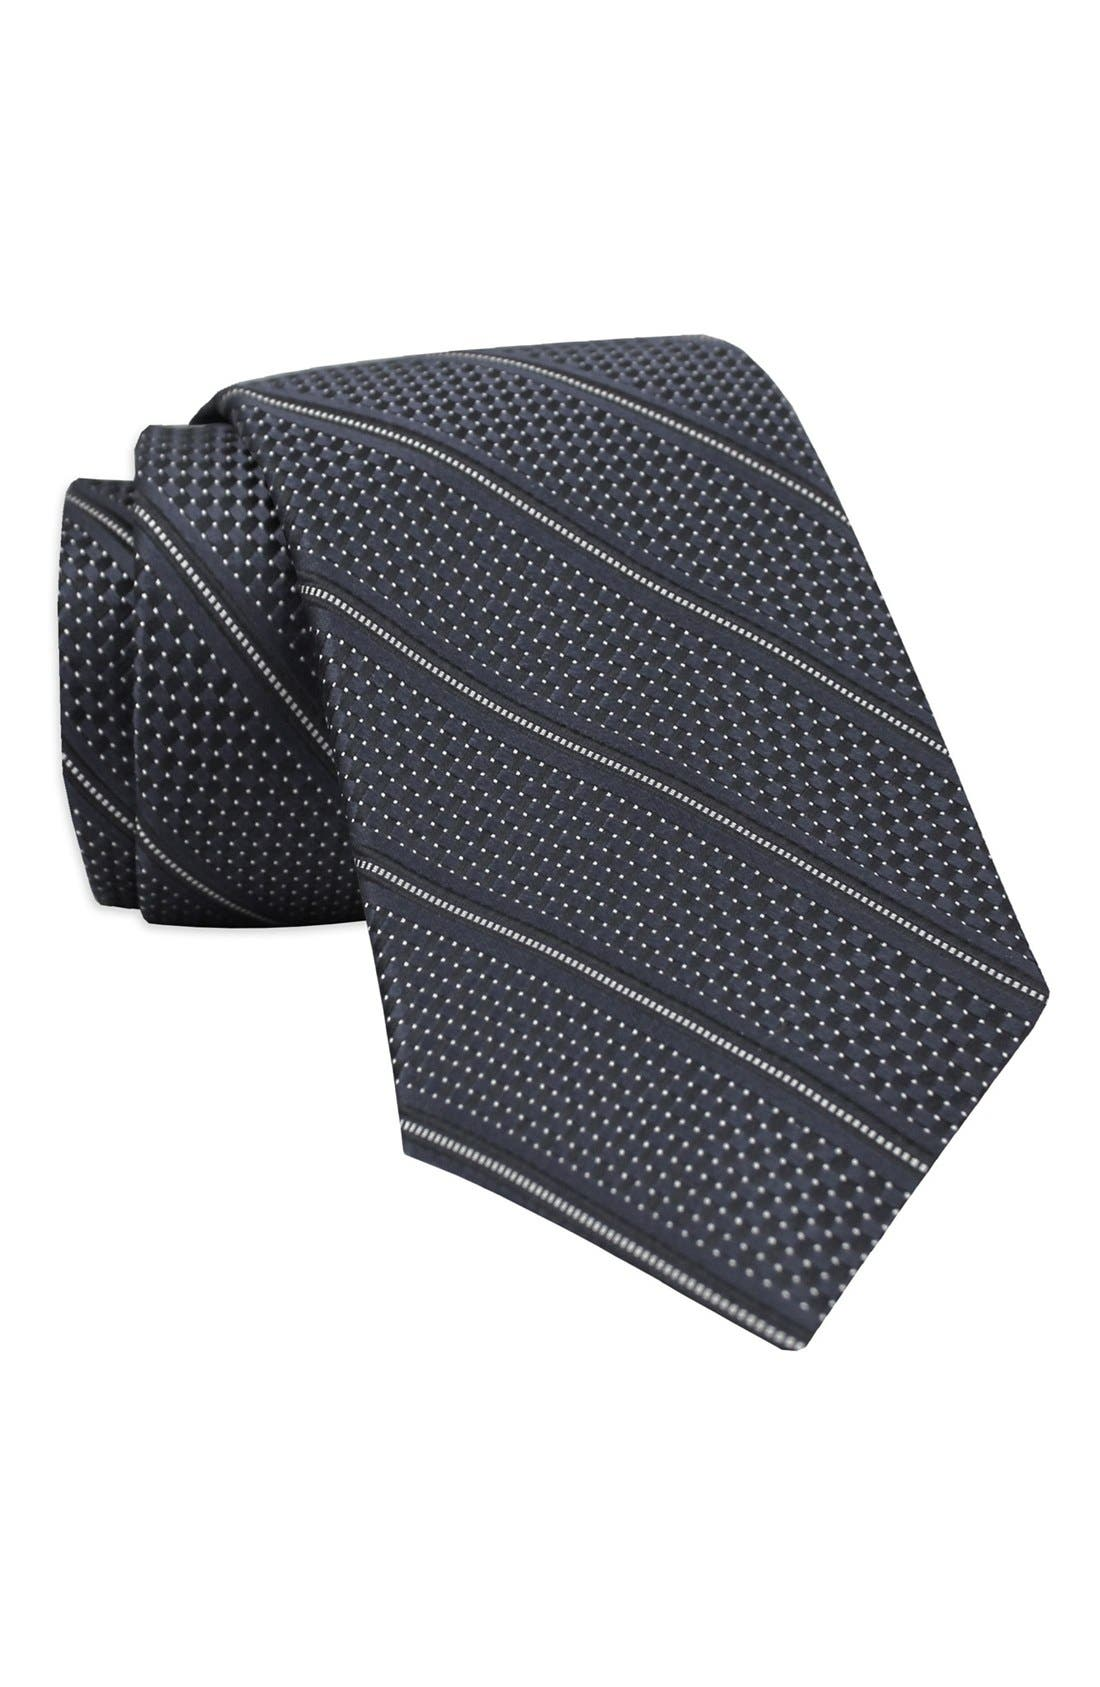 Stripe Woven Silk Tie,                             Main thumbnail 1, color,                             Charcoal